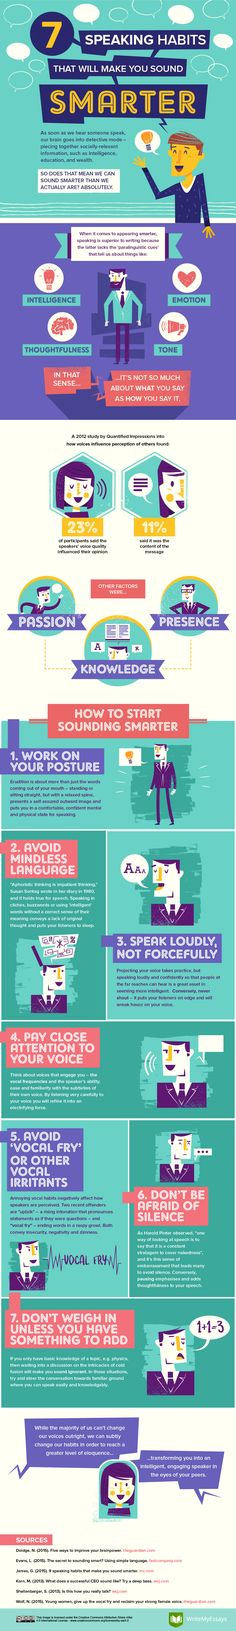 Infographic: 7 speaking habits that will make you sound smarter - Matador Network